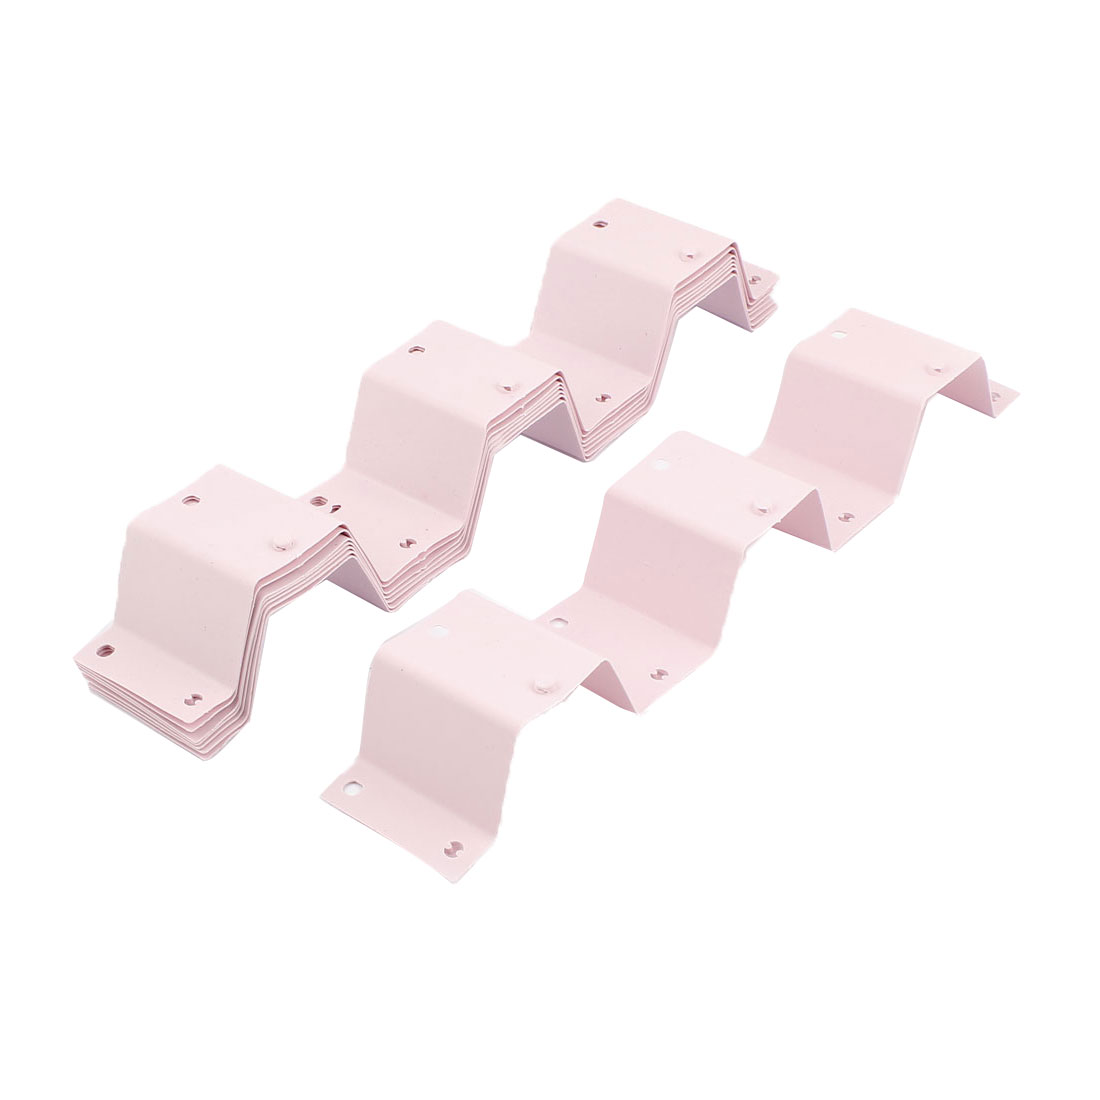 Plastic Adjustable Drawer Compartment Divider Board Organizer Pink 8Pcs